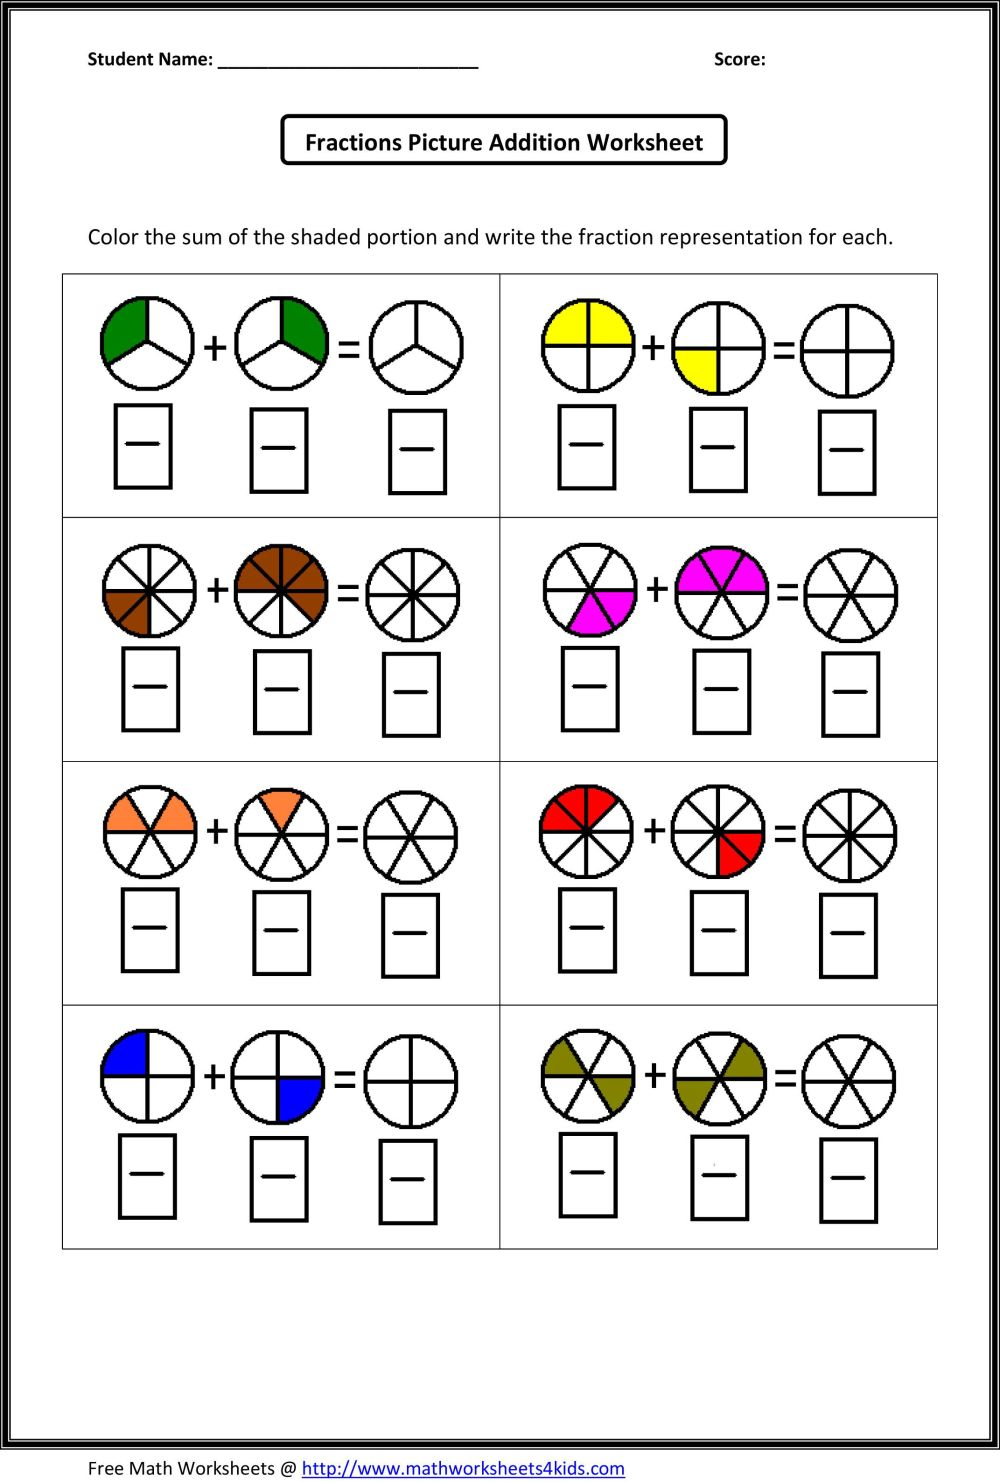 medium resolution of 13 Best Adding Fractions Worksheets images on Best Worksheets Collection